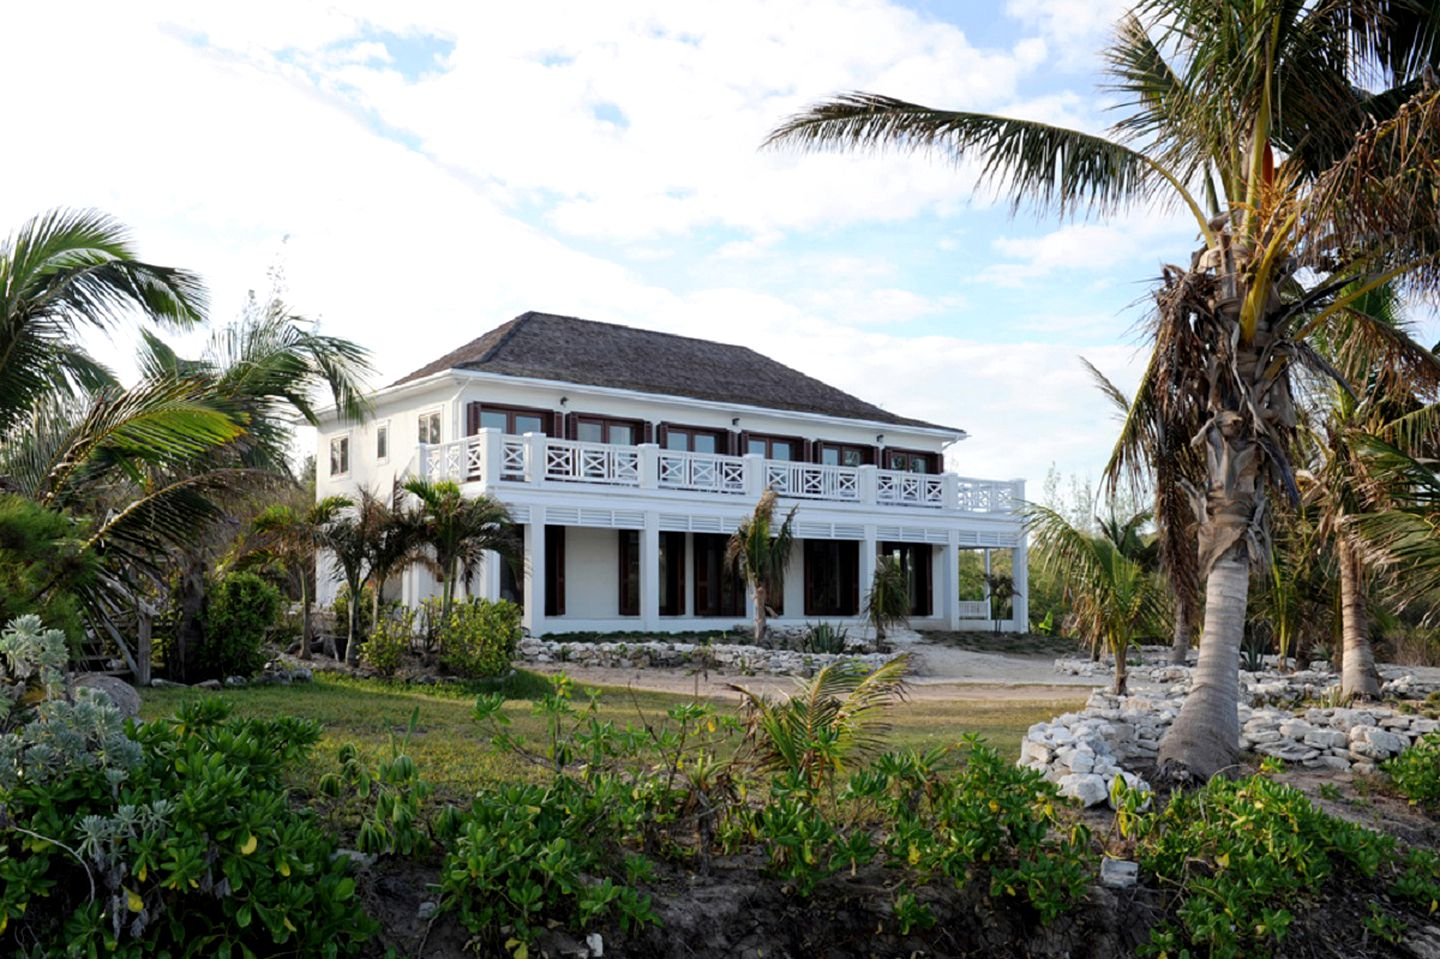 Beach house in Governor's Harbour on North Eleuthera, Bahamas.